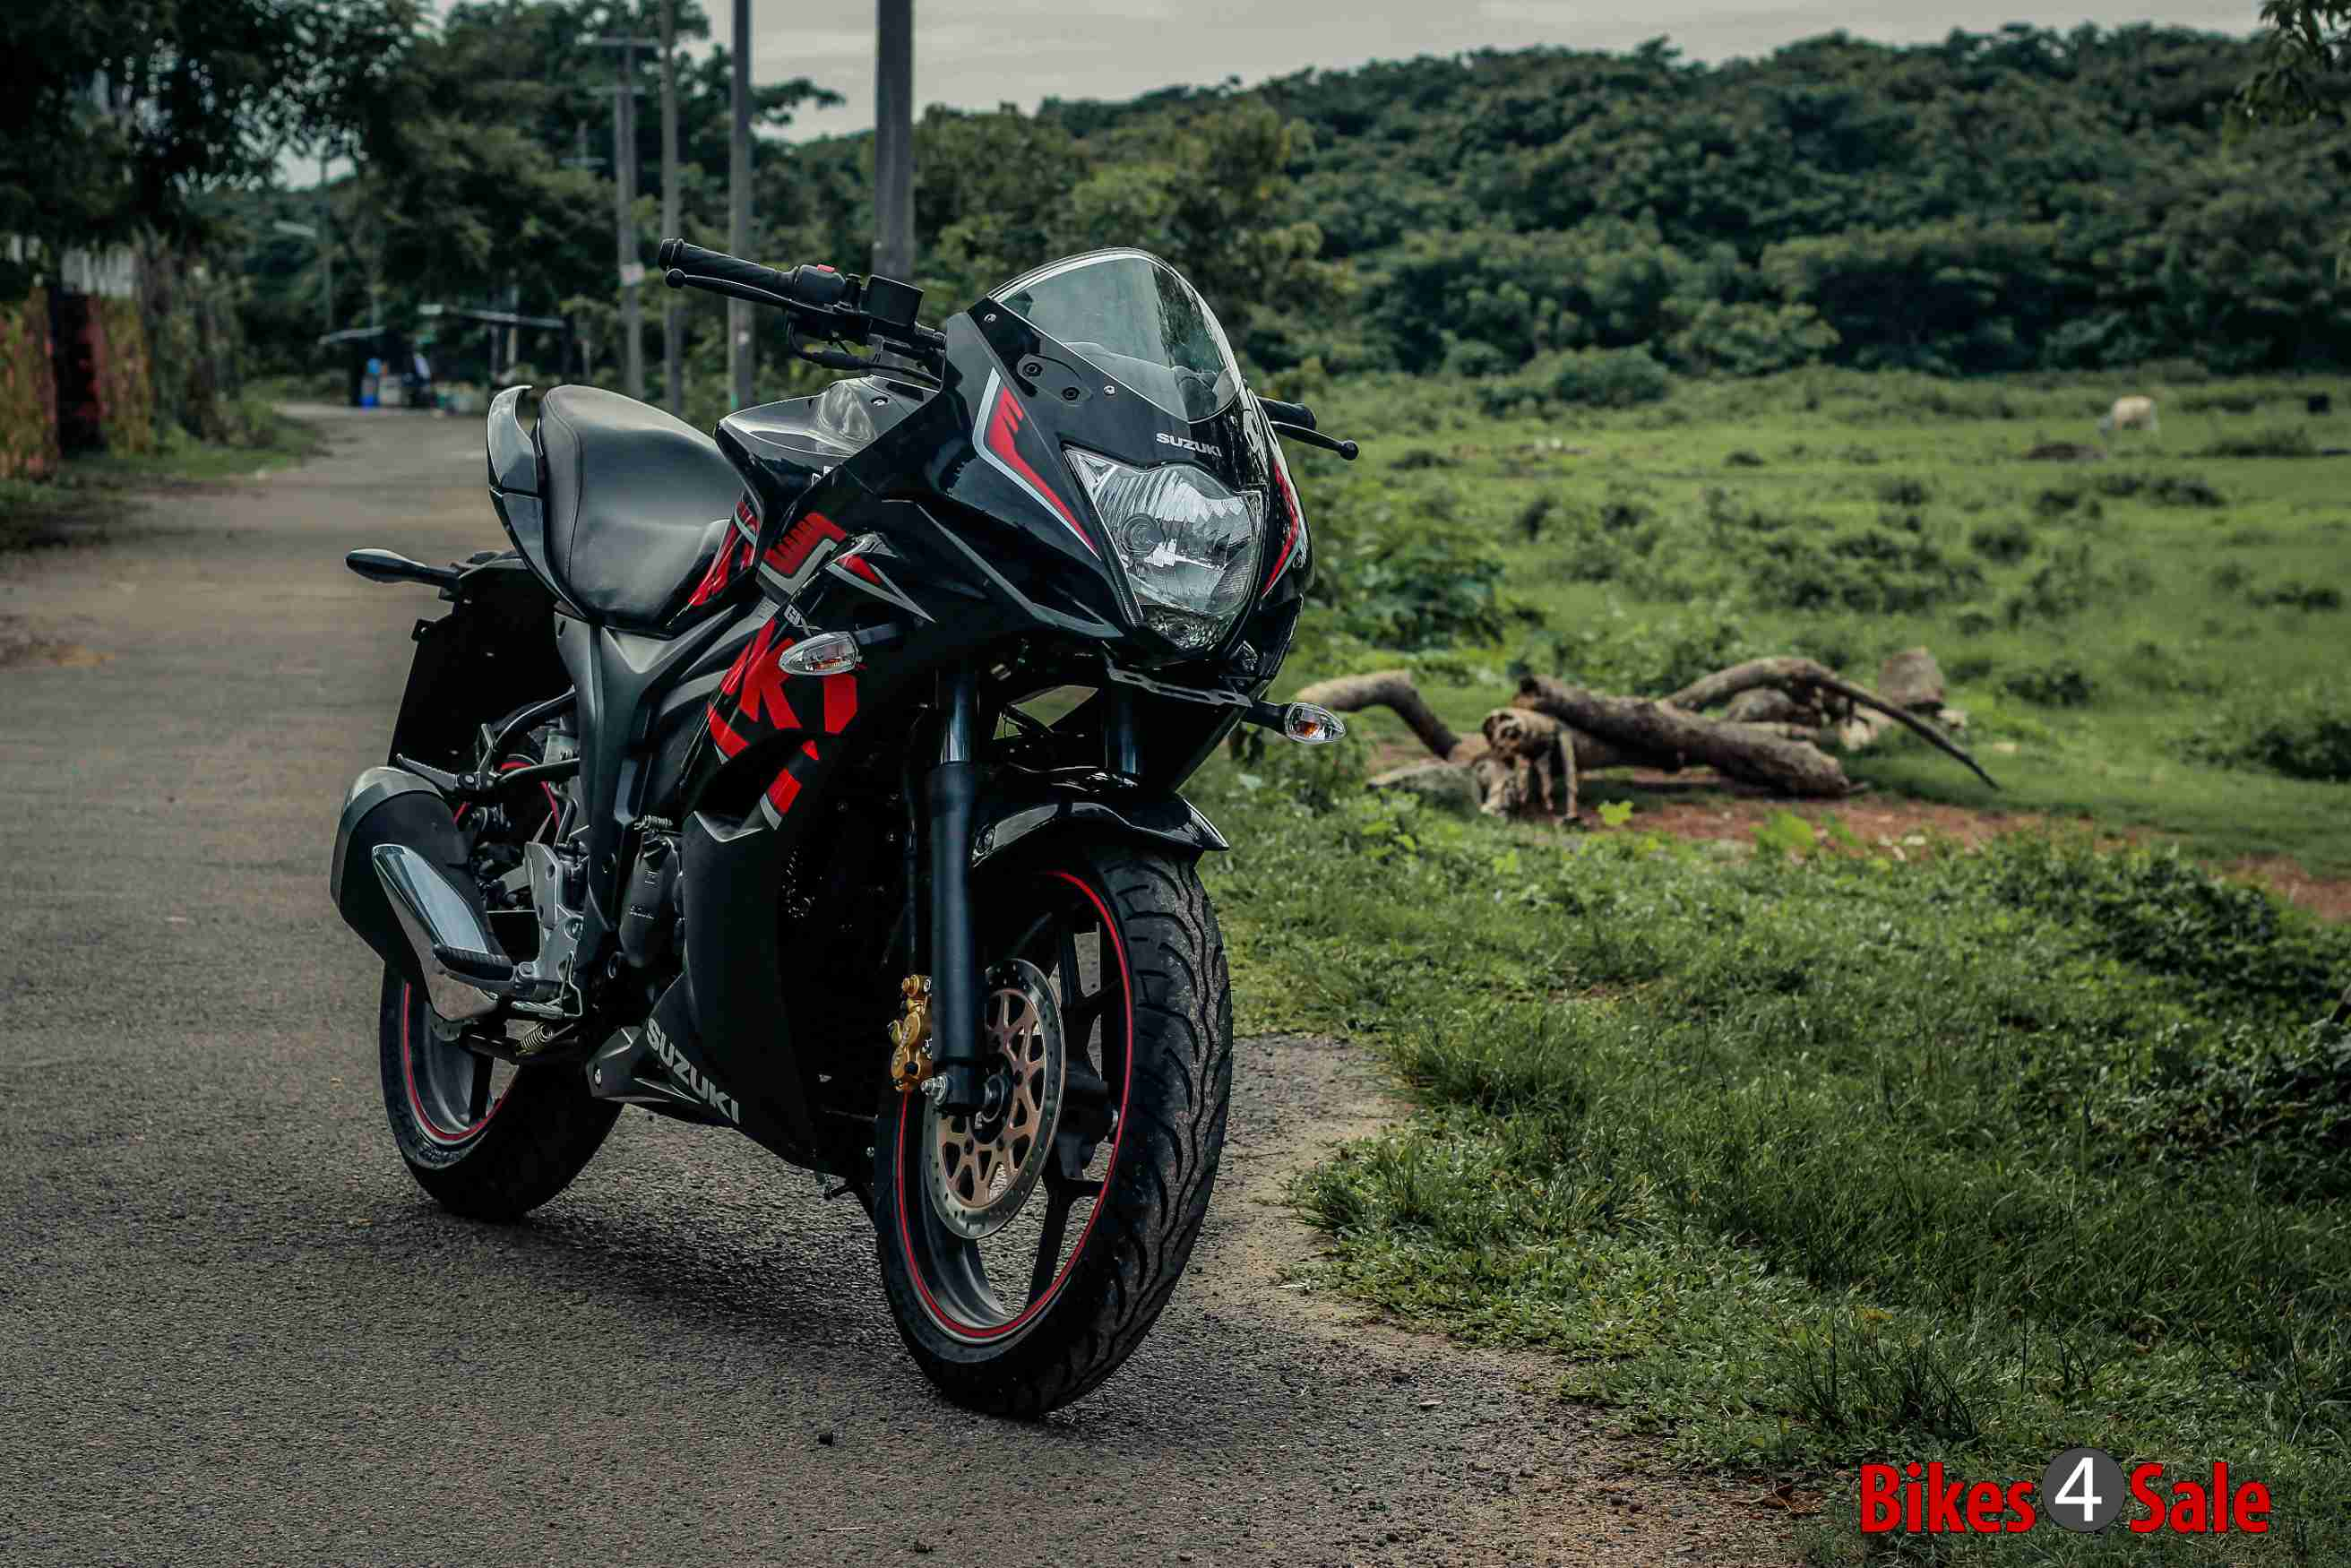 Suzuki Gixxer Sf Fi Glass Sparkle Black Metallic with Red